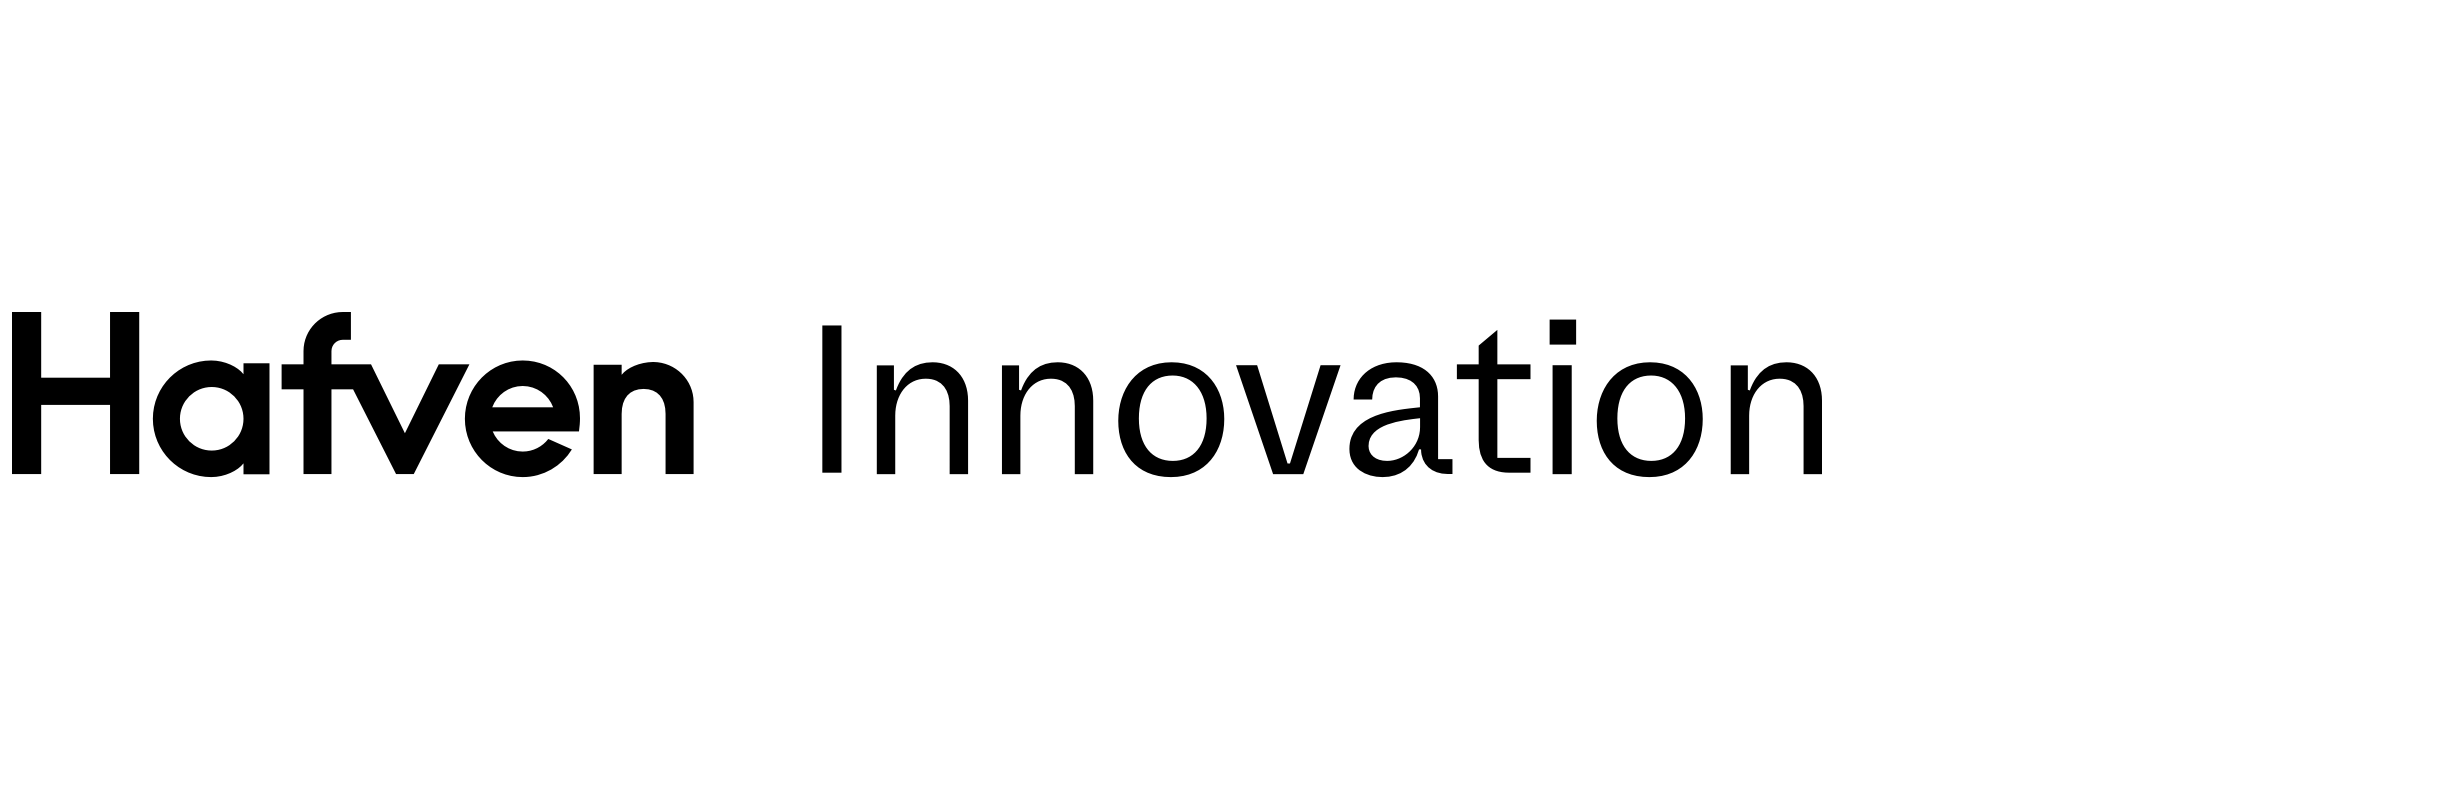 Hafven Innovation Consulting Logo